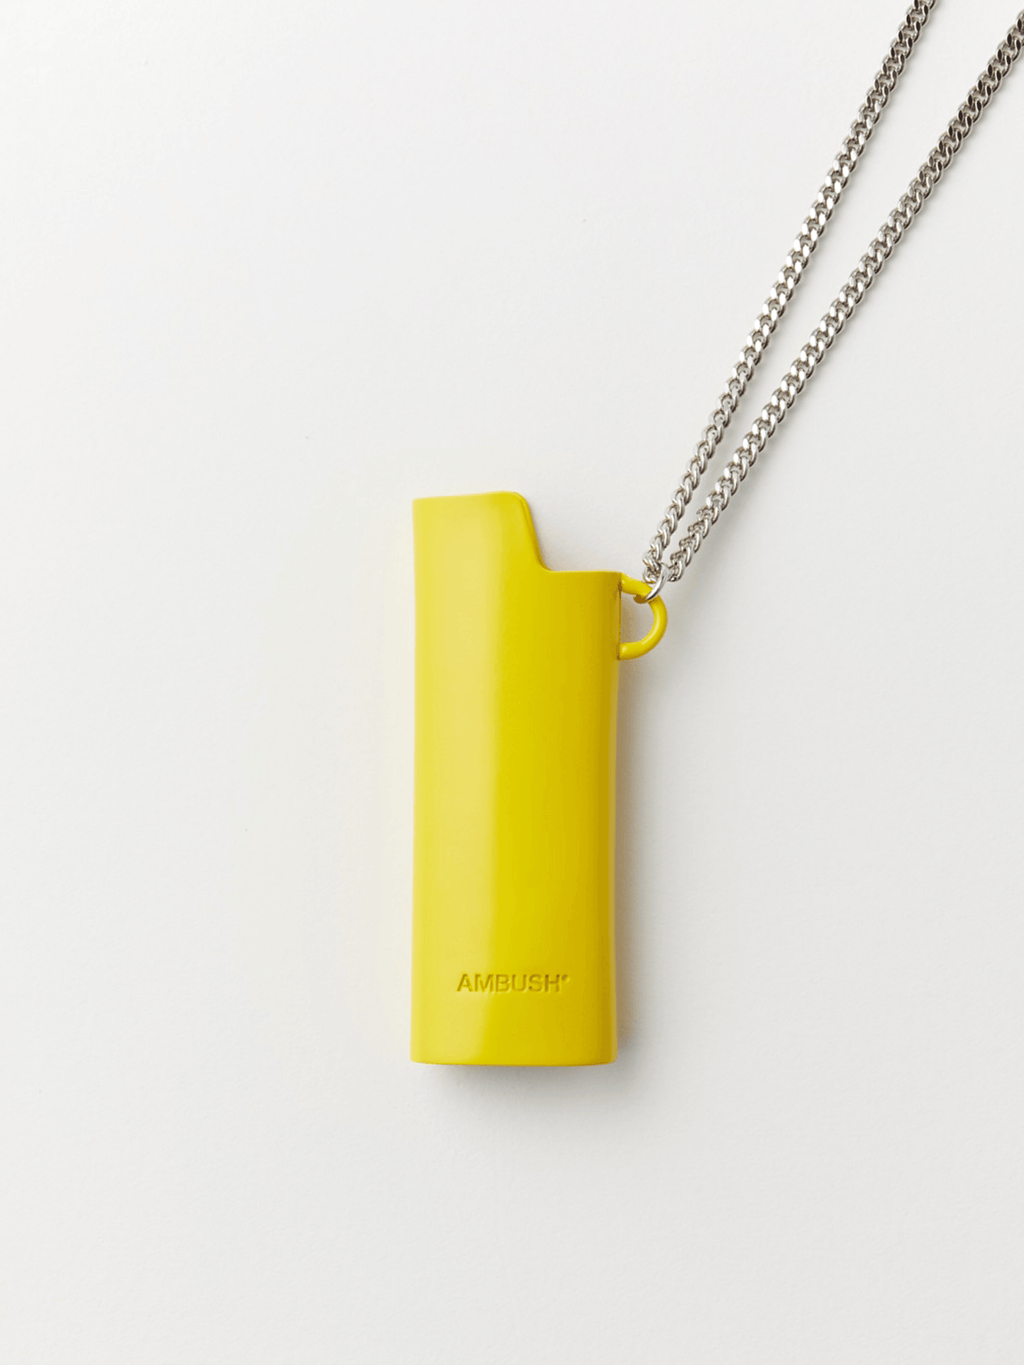 Ambush Lighter Case Necklace (Yellow) Small - PRIOR